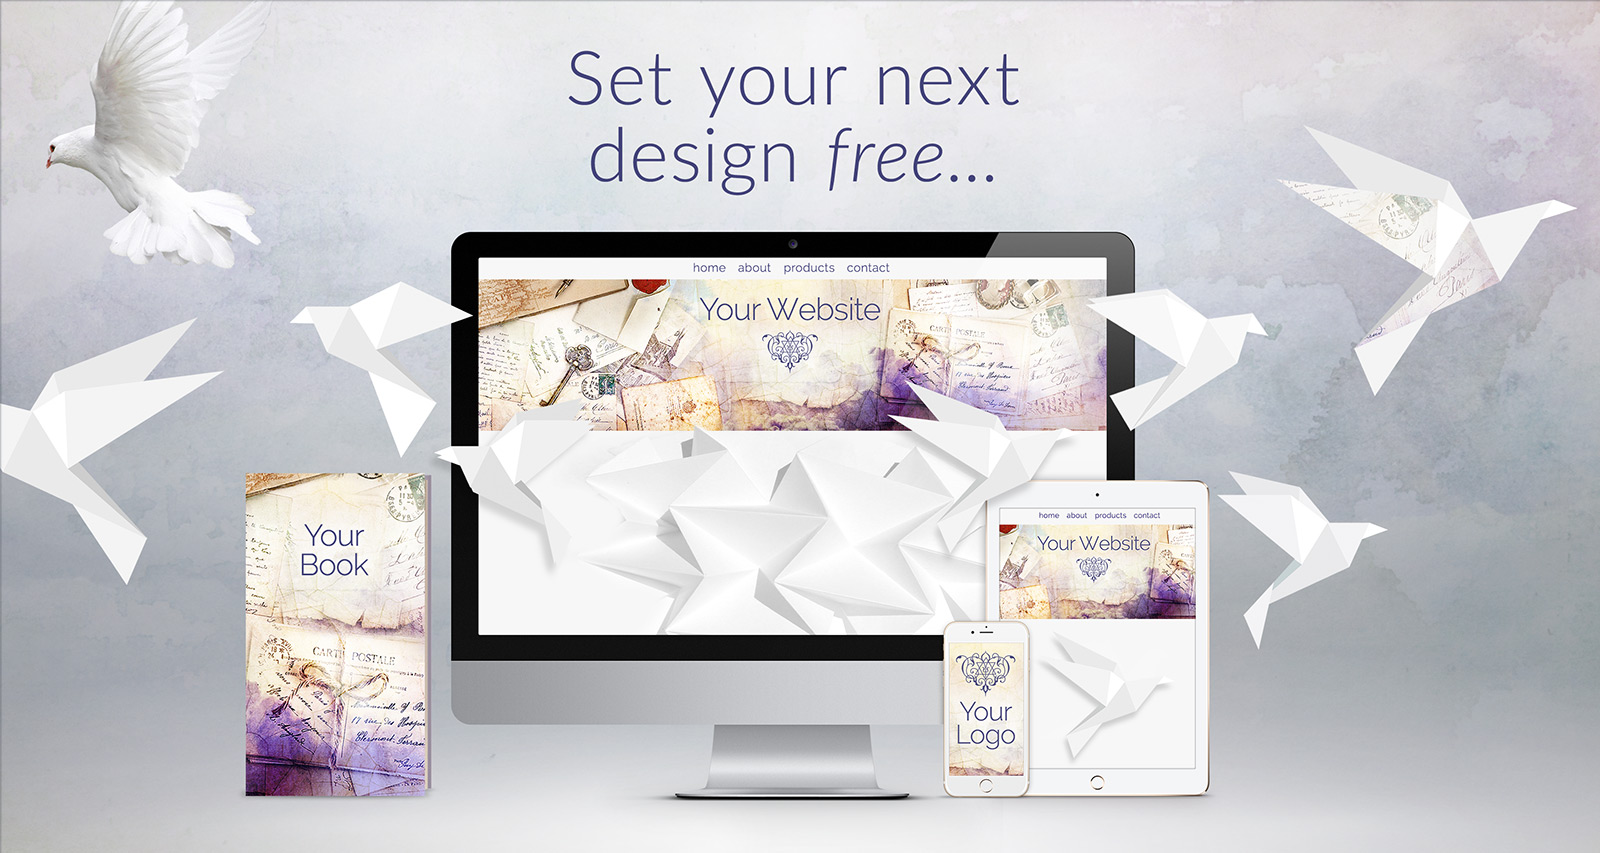 Set your next design free